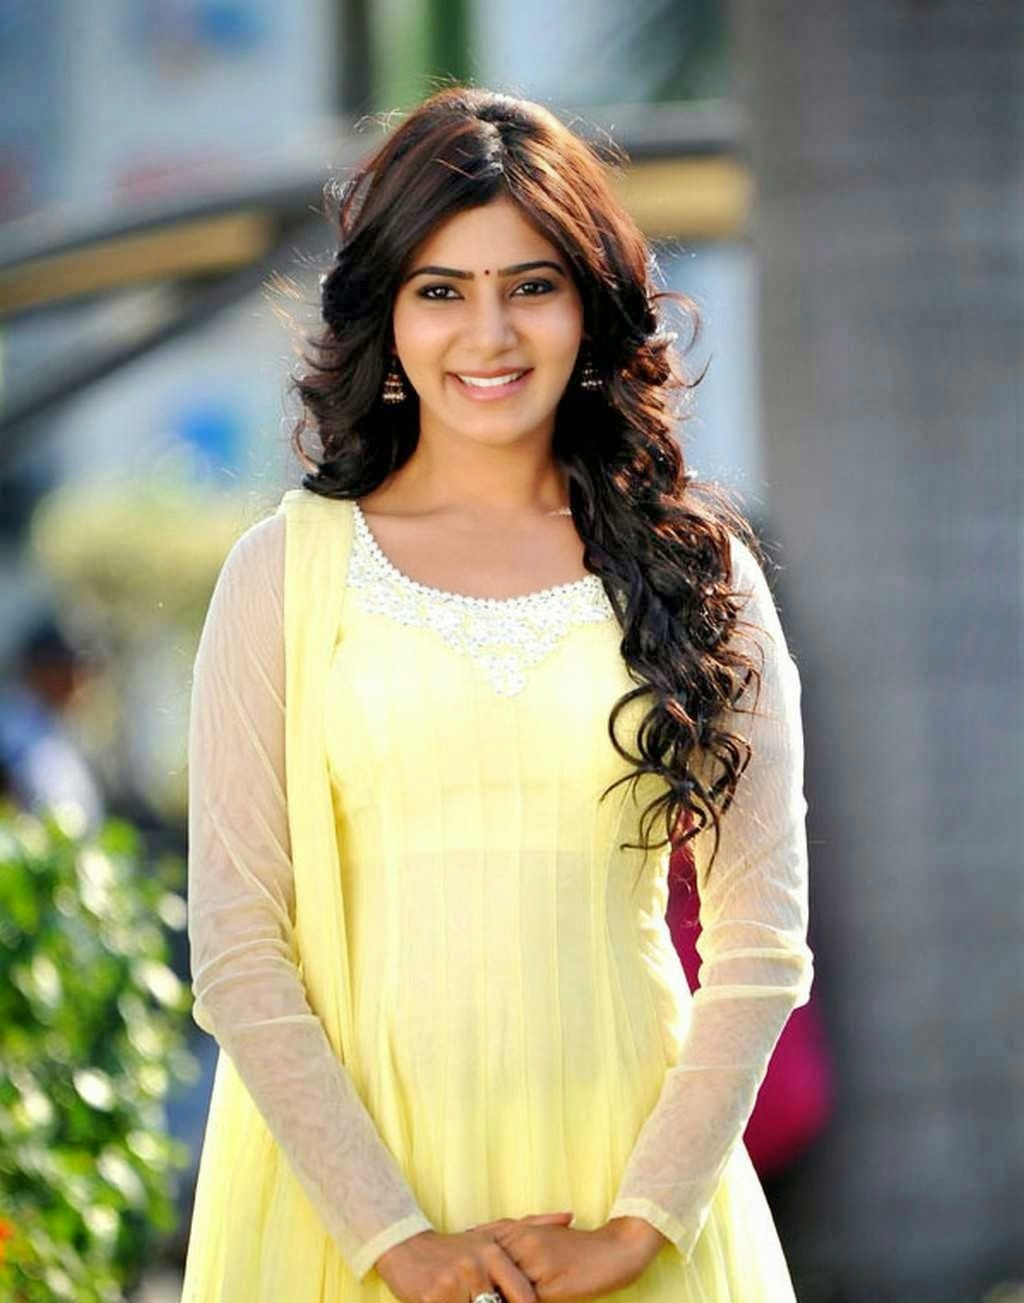 fun and poondi : samantha ruth prabhu hd wallpapers free download